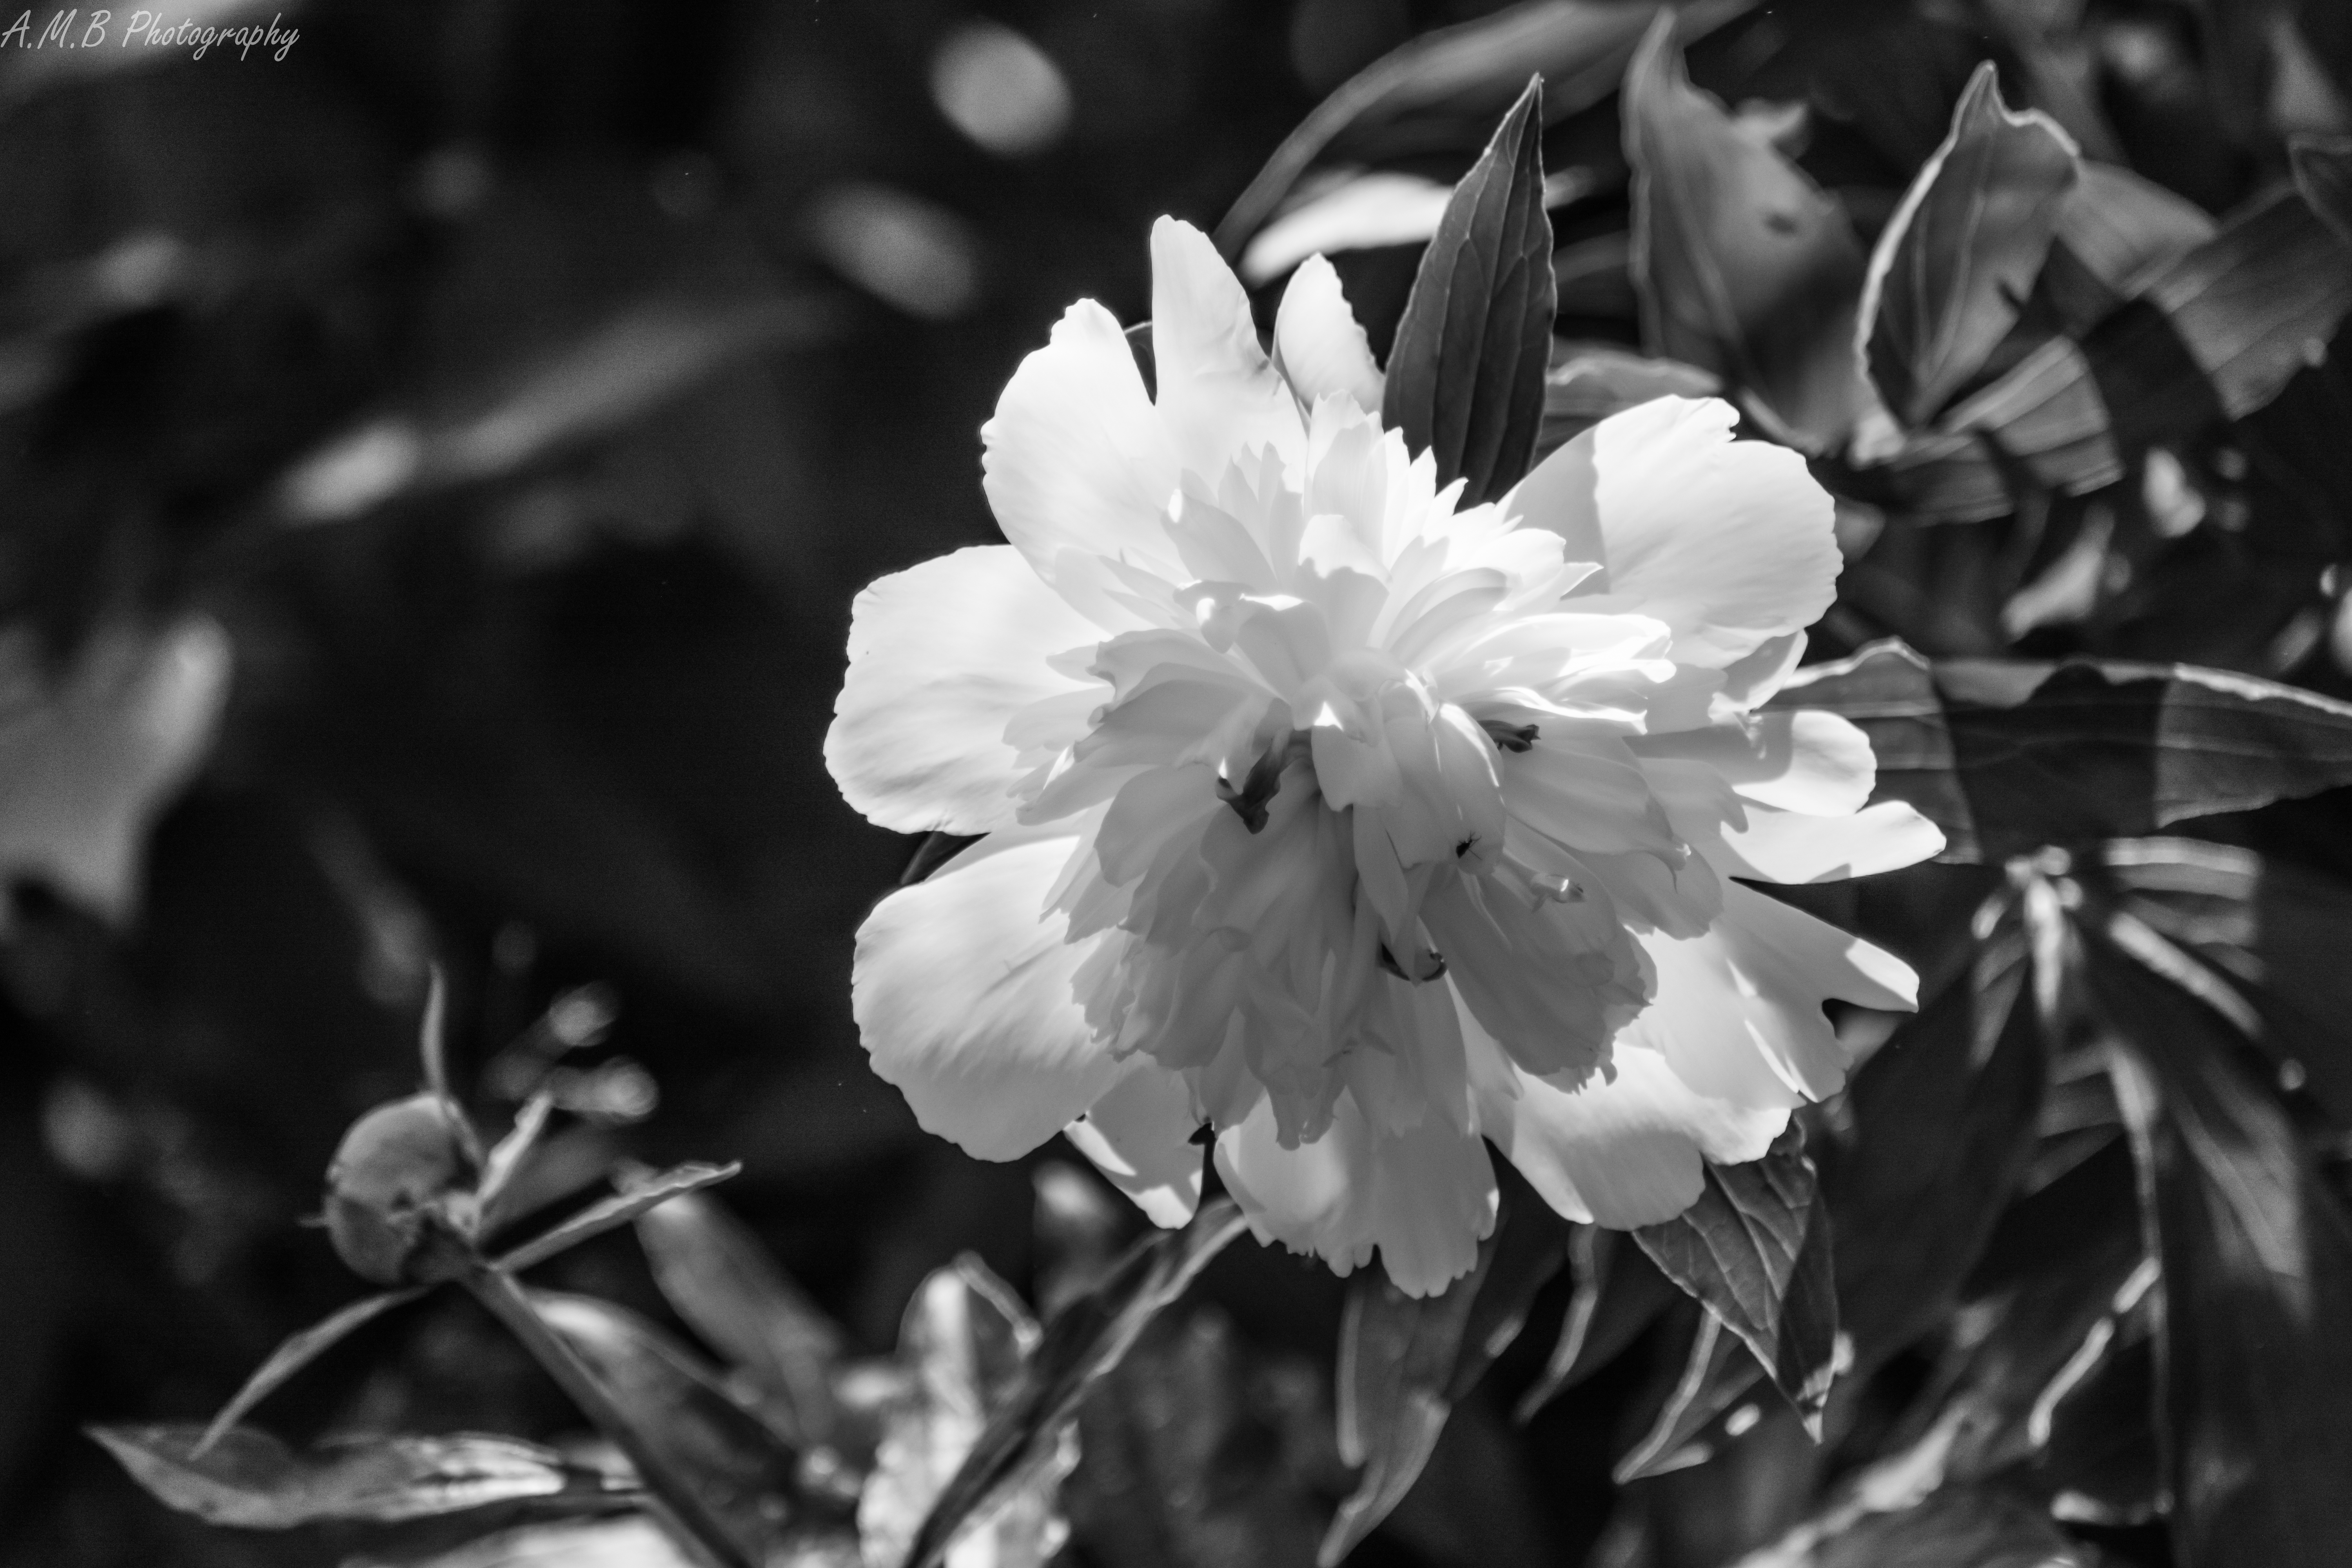 Peony Flower in Black and White